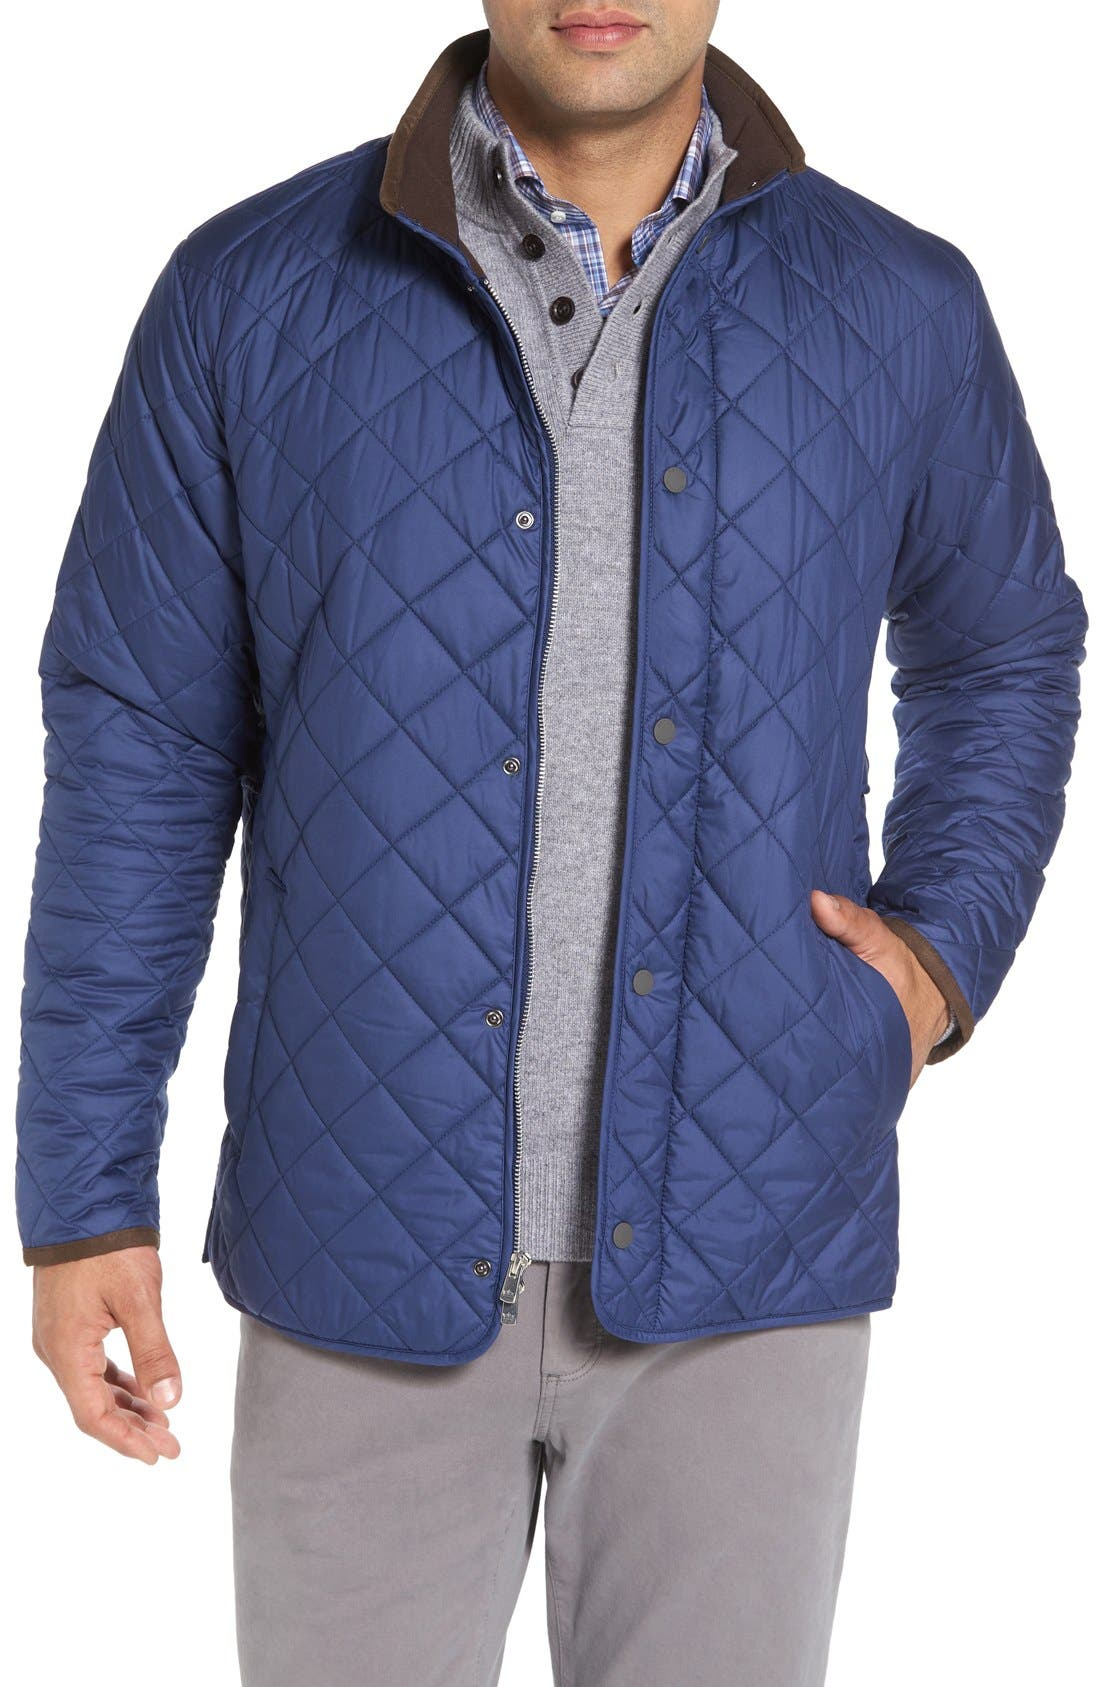 Main Image - Peter Millar Norfolk Water Resistant Quilted Jacket